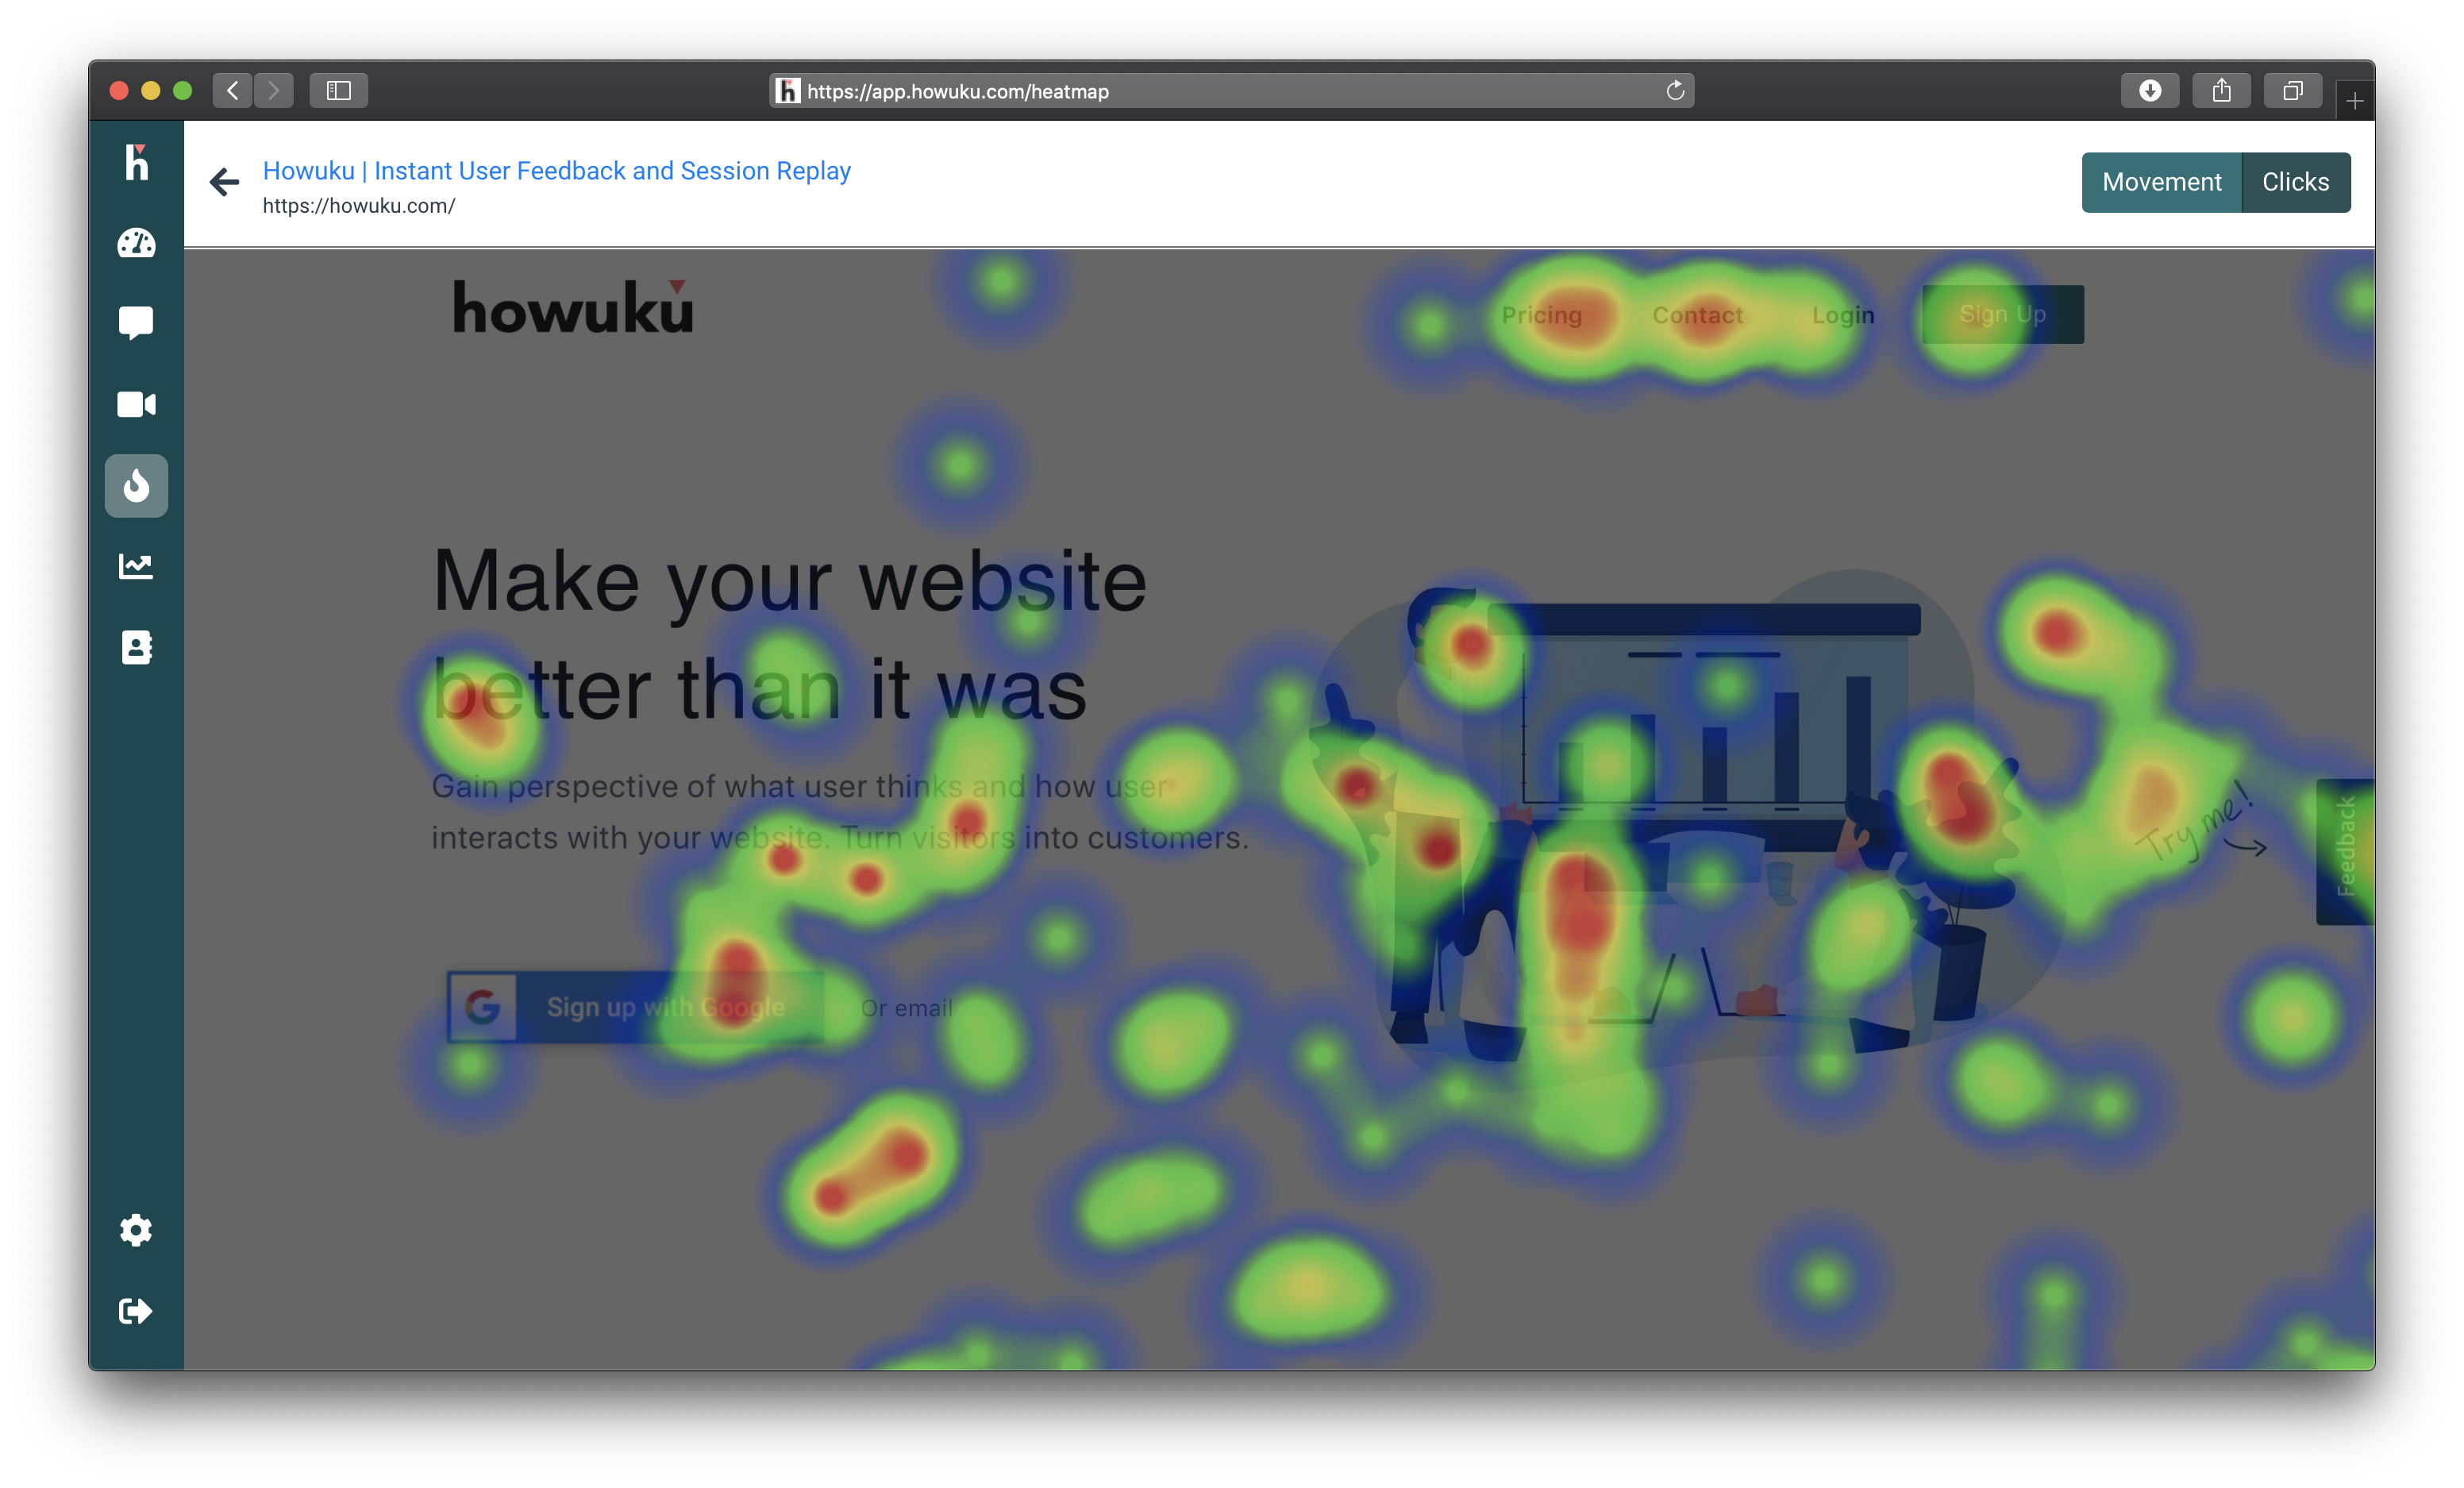 Heatmap of your website